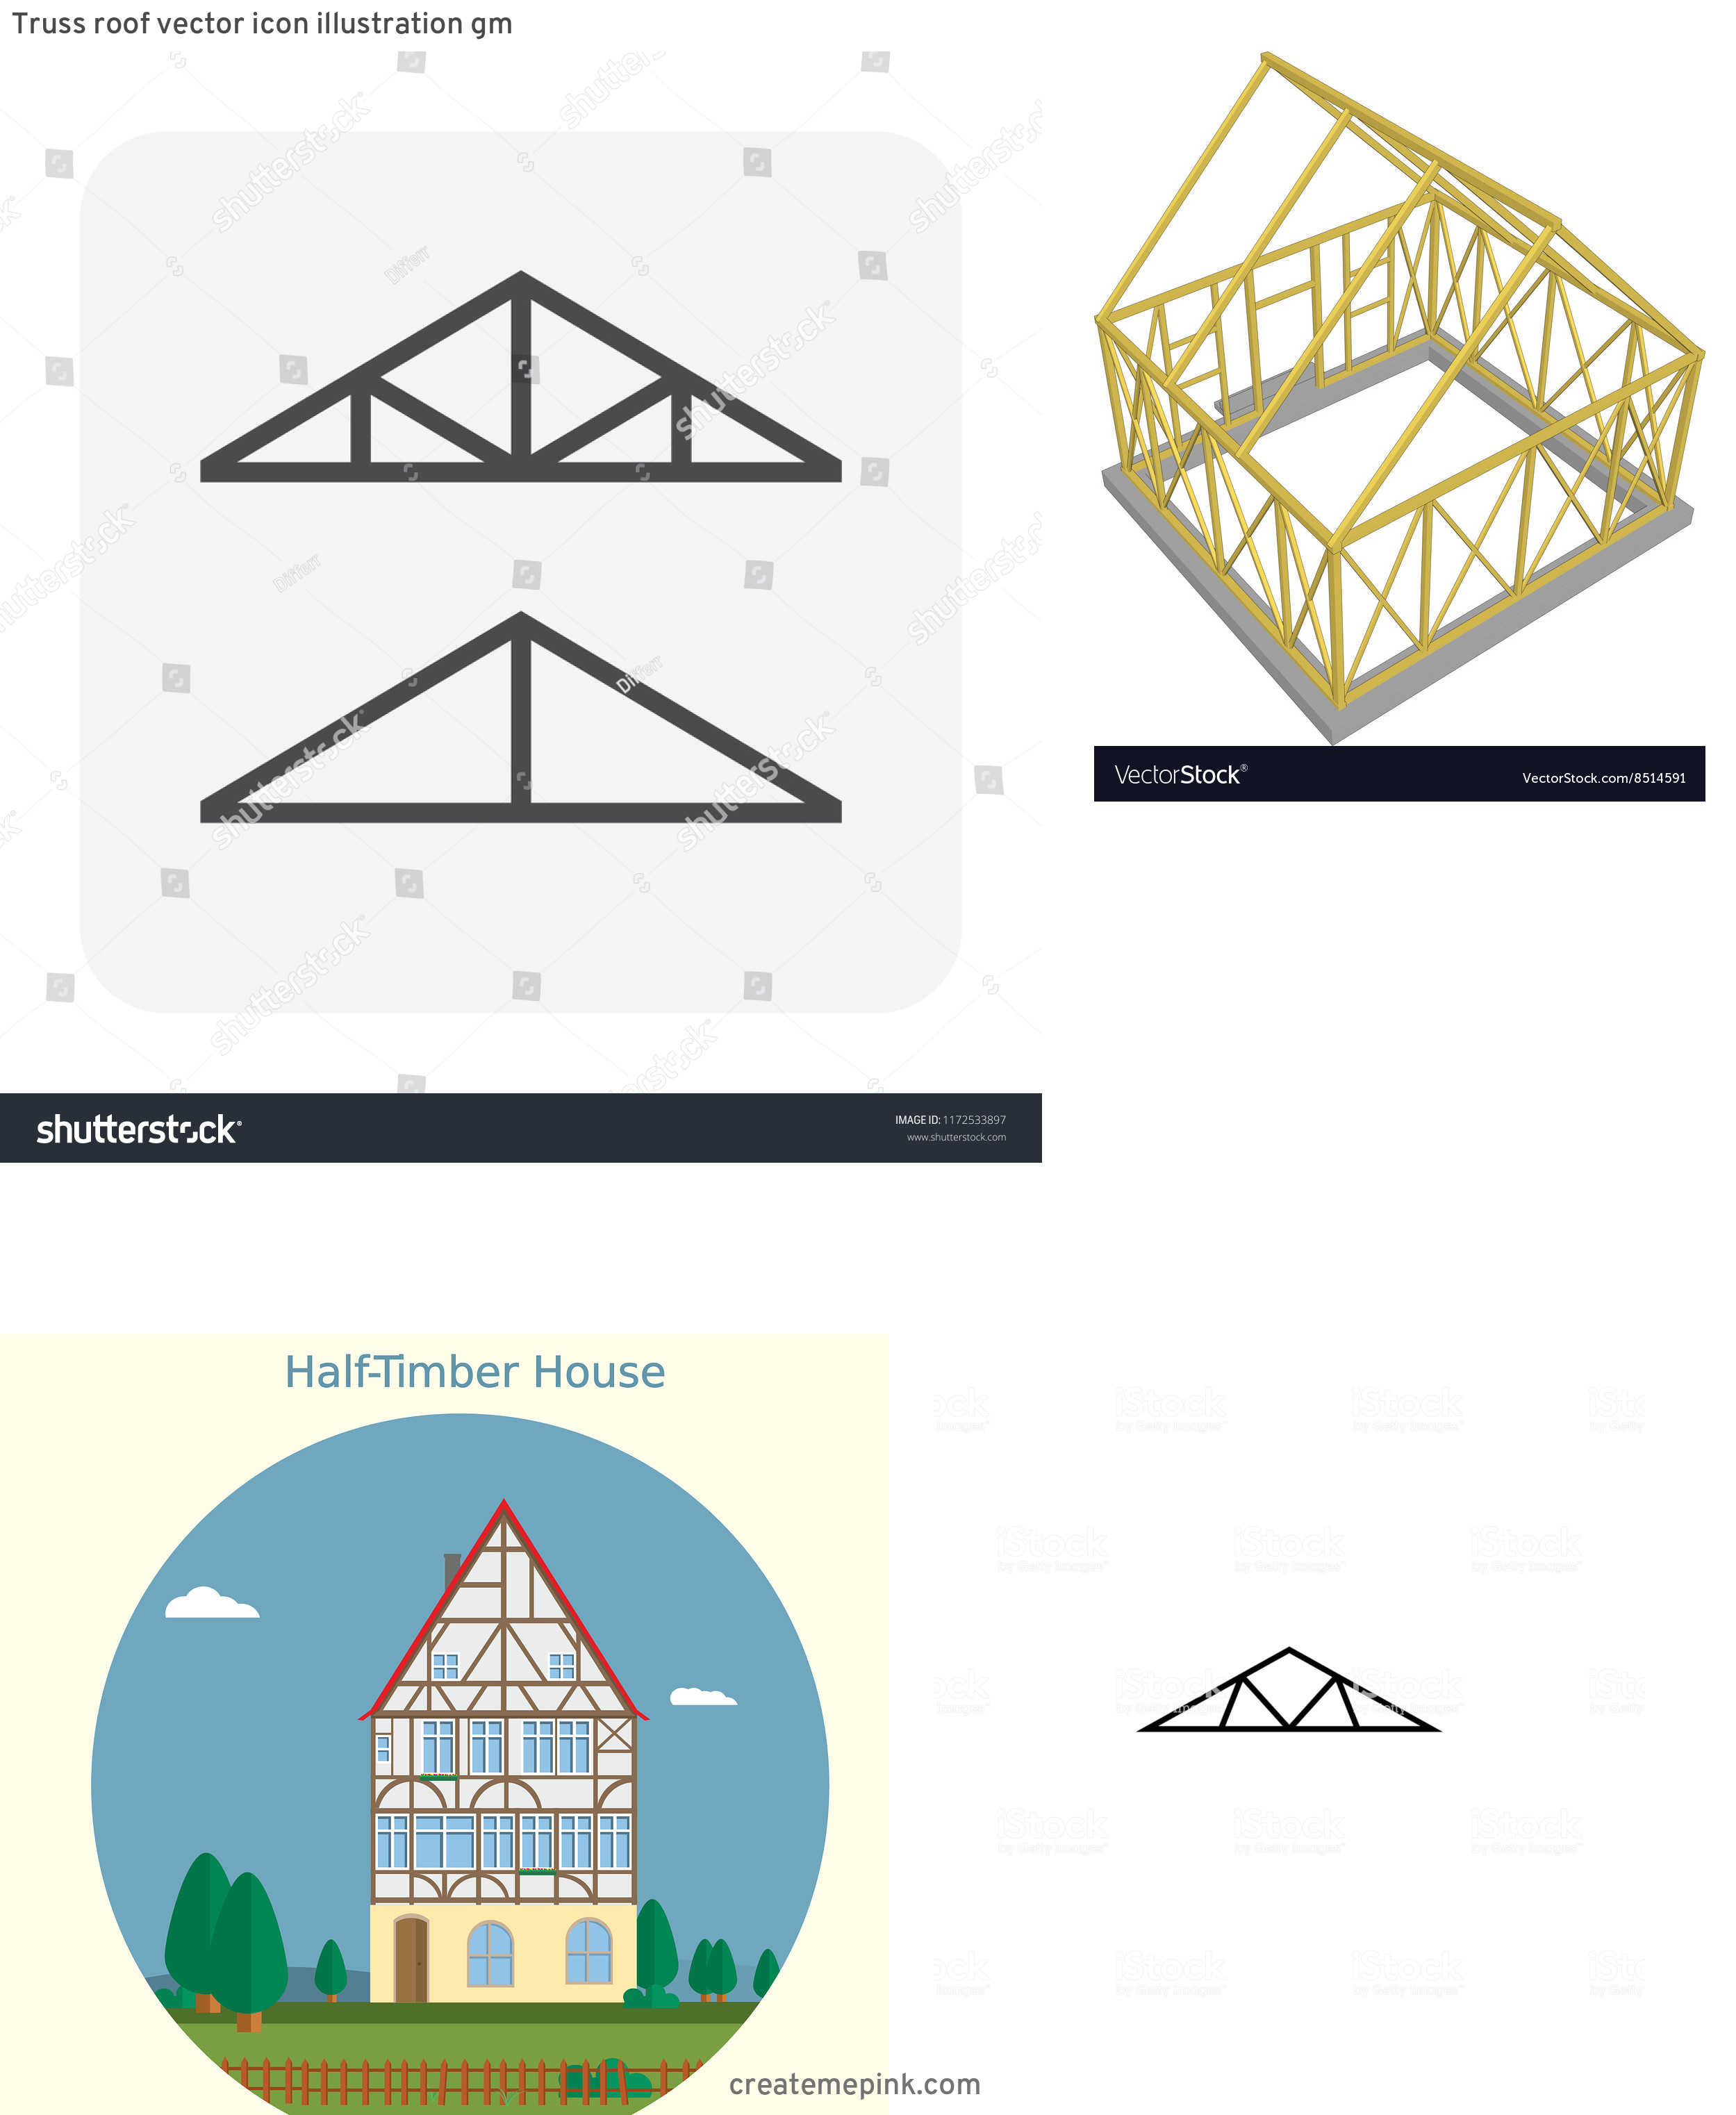 House Truss Vector: Truss Roof Vector Icon Illustration Gm